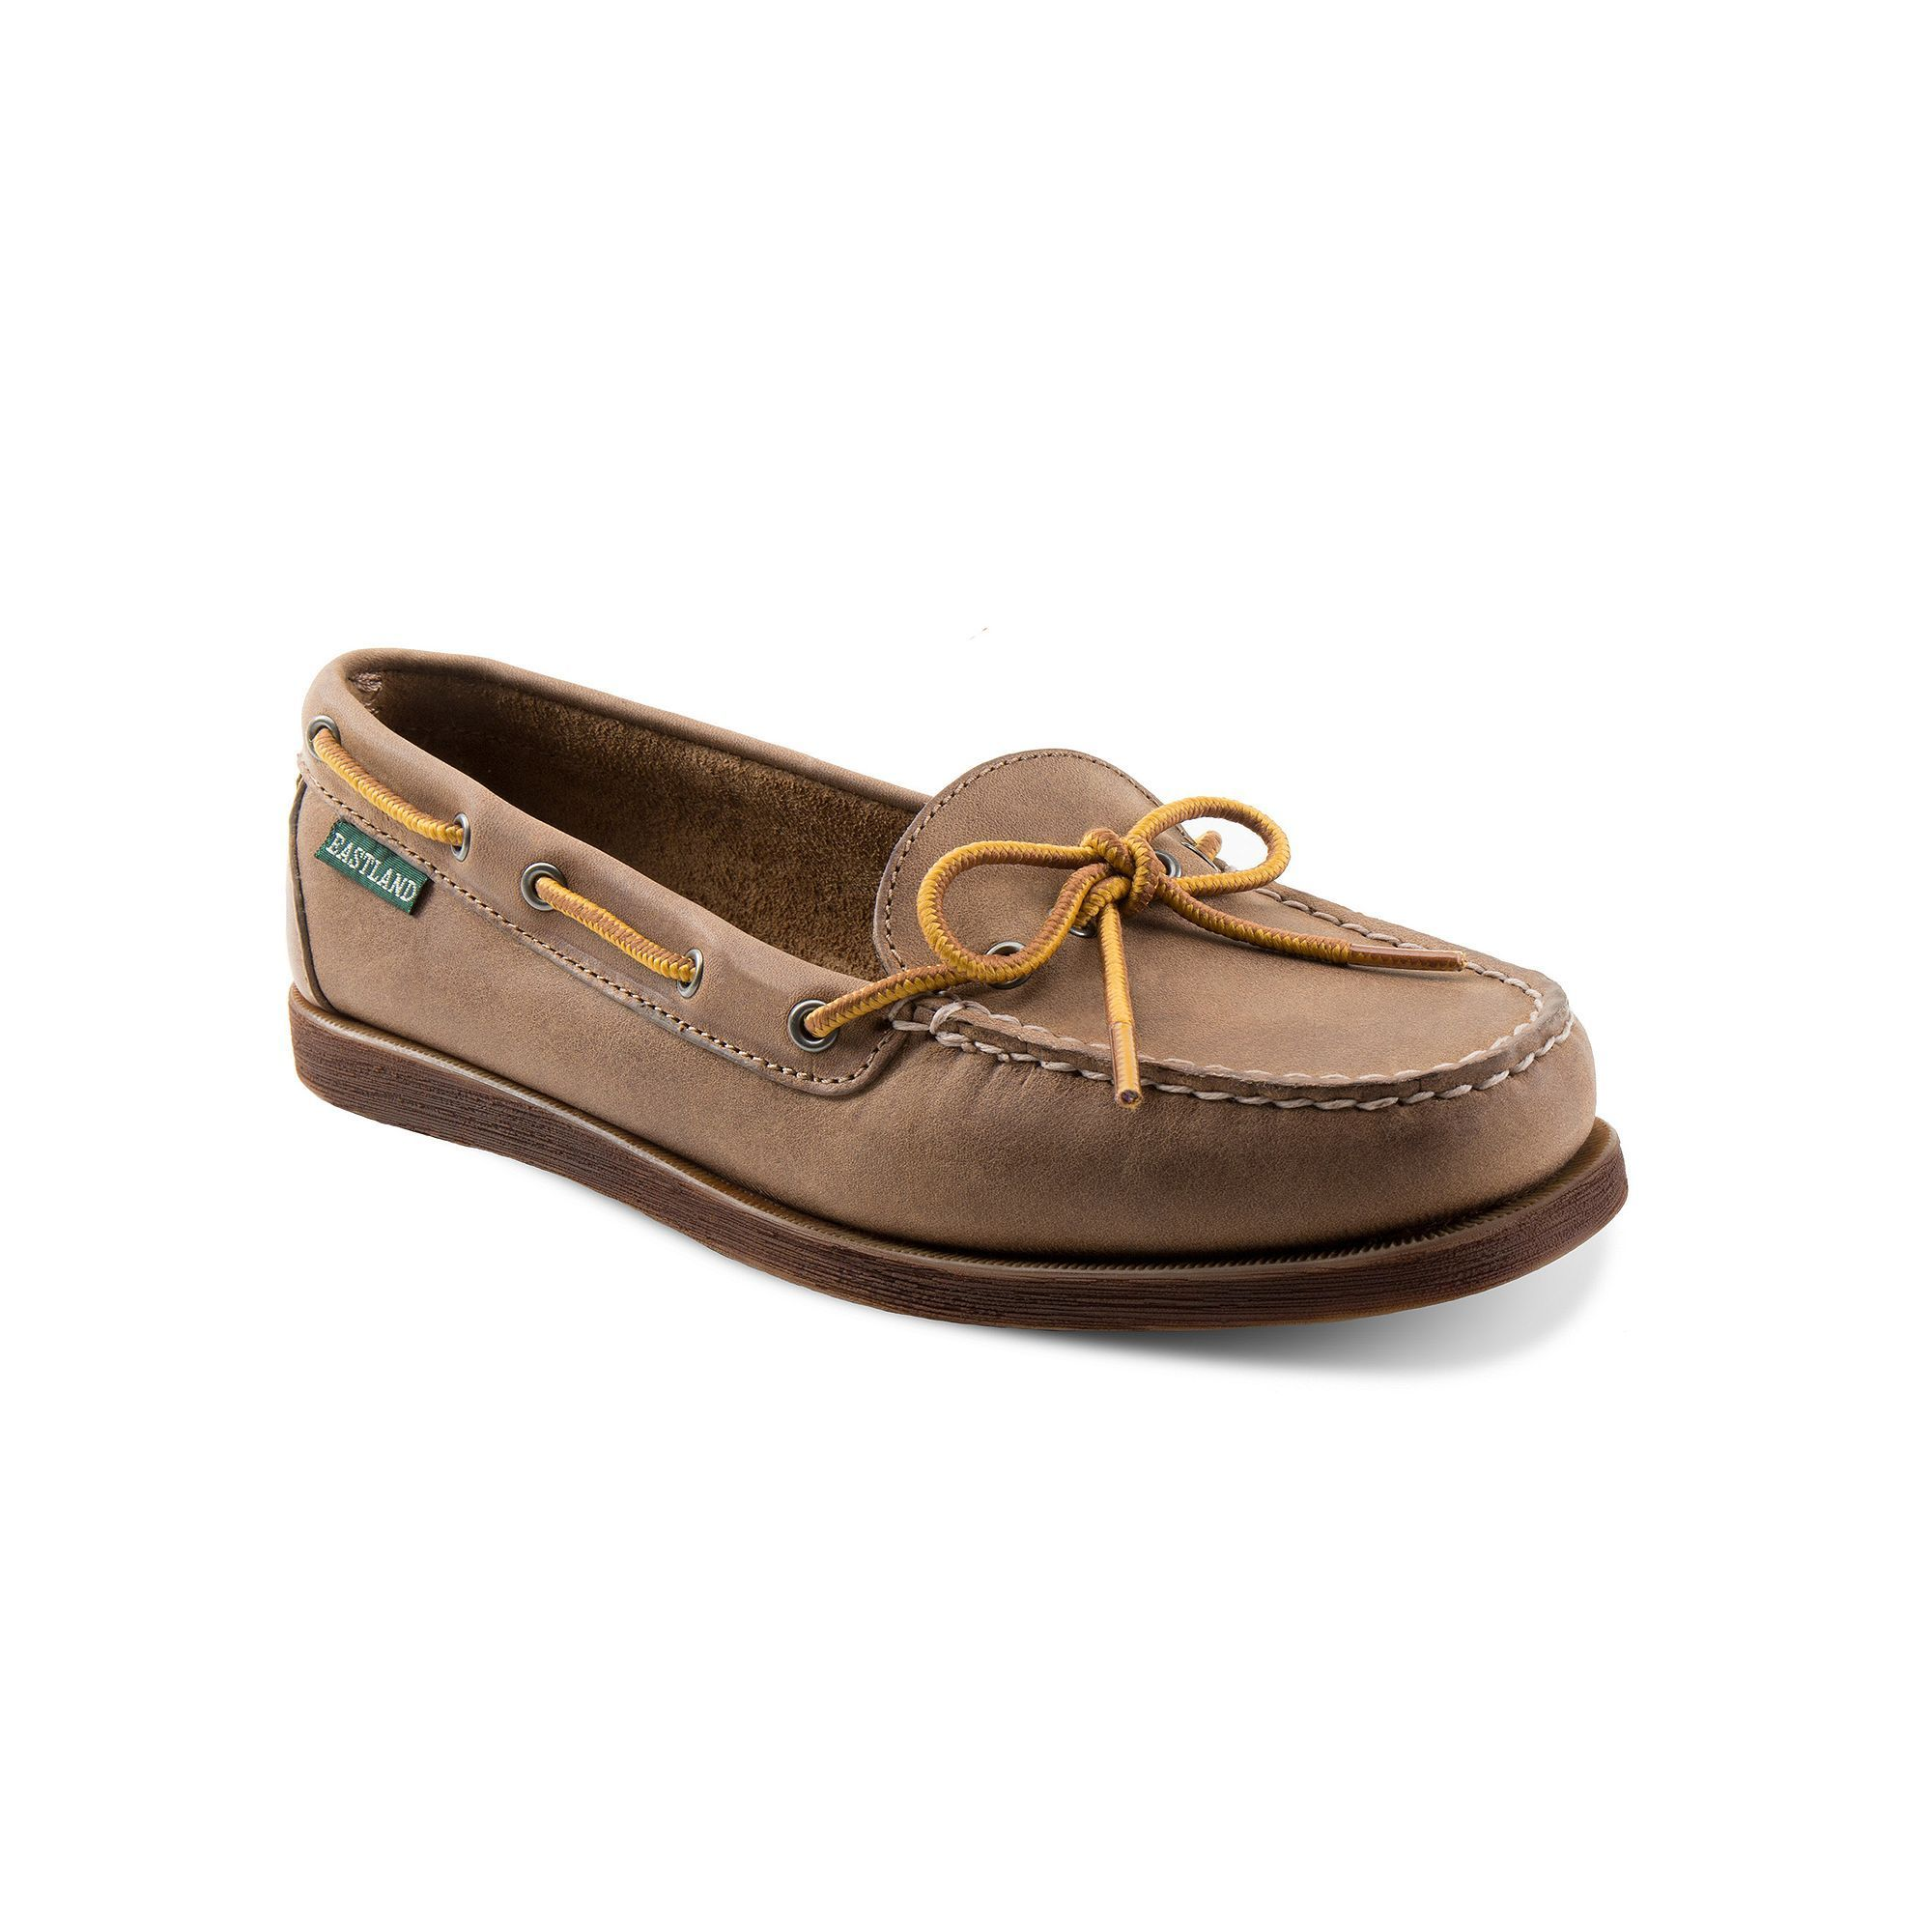 0191c920118 Eastland Yarmouth Women s Slip-On Leather Boat Shoes